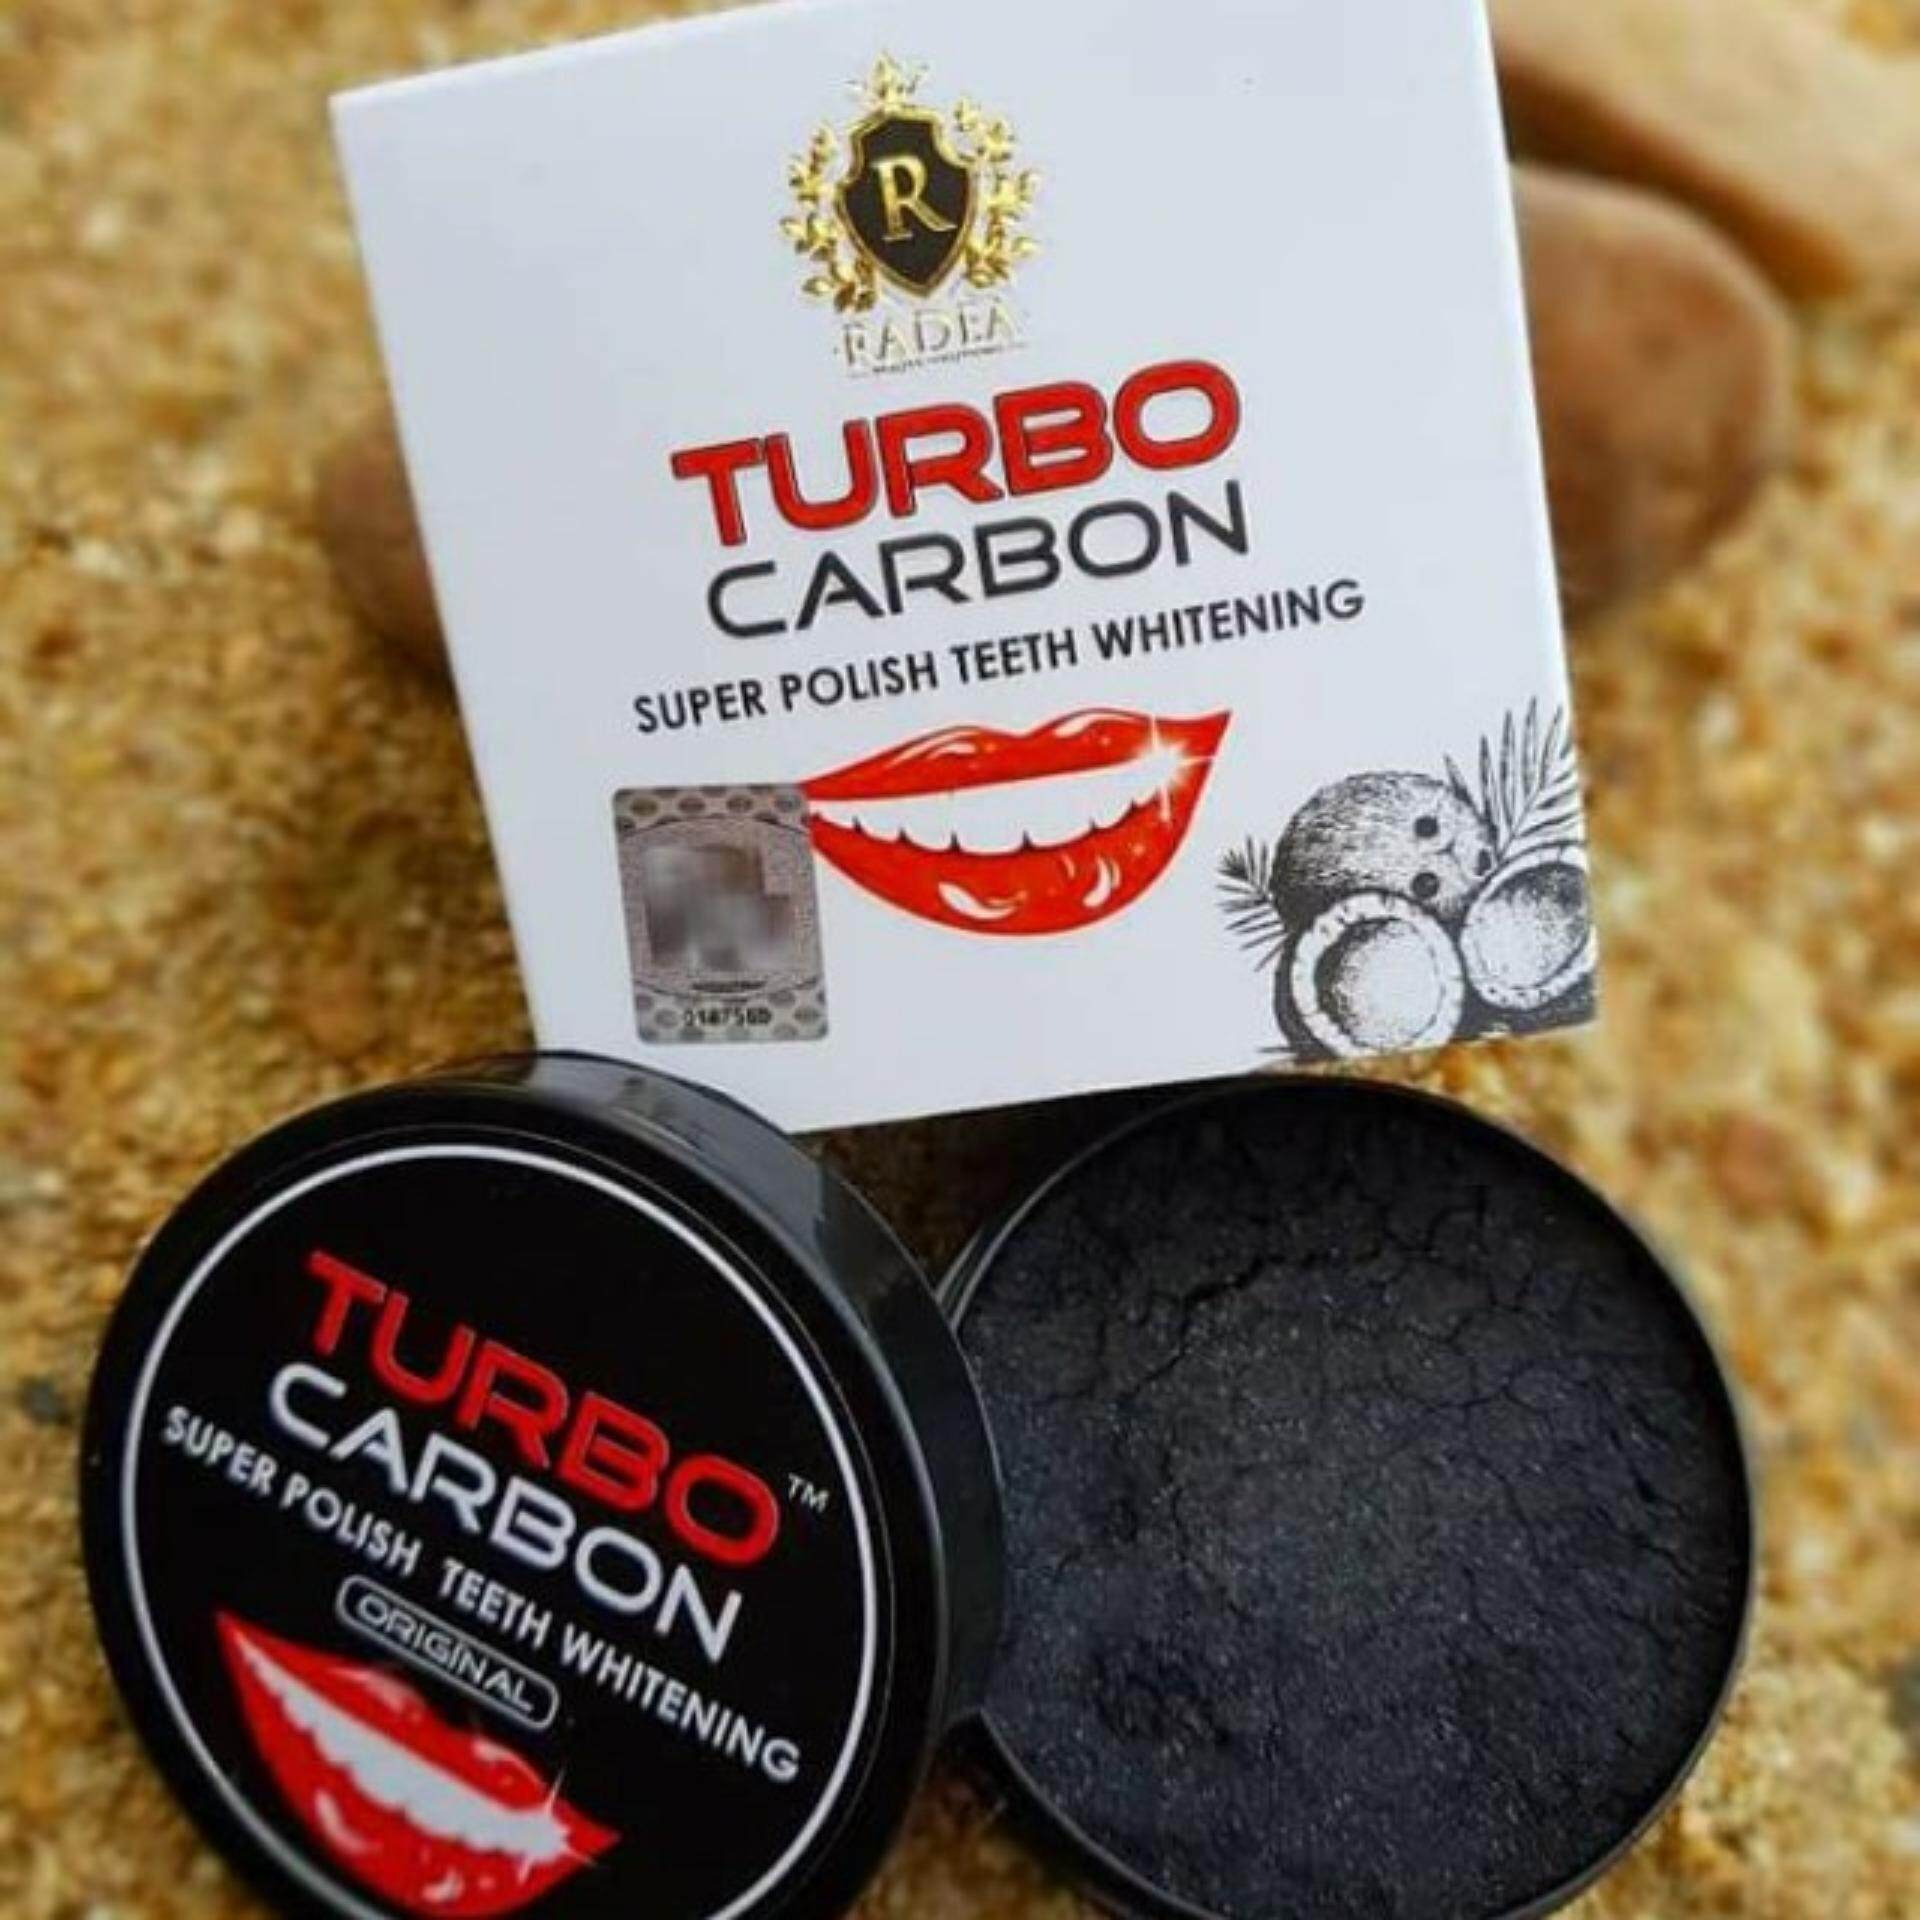 TURBO CARBON Super Polish Teeth Whitening by RADEA Original!